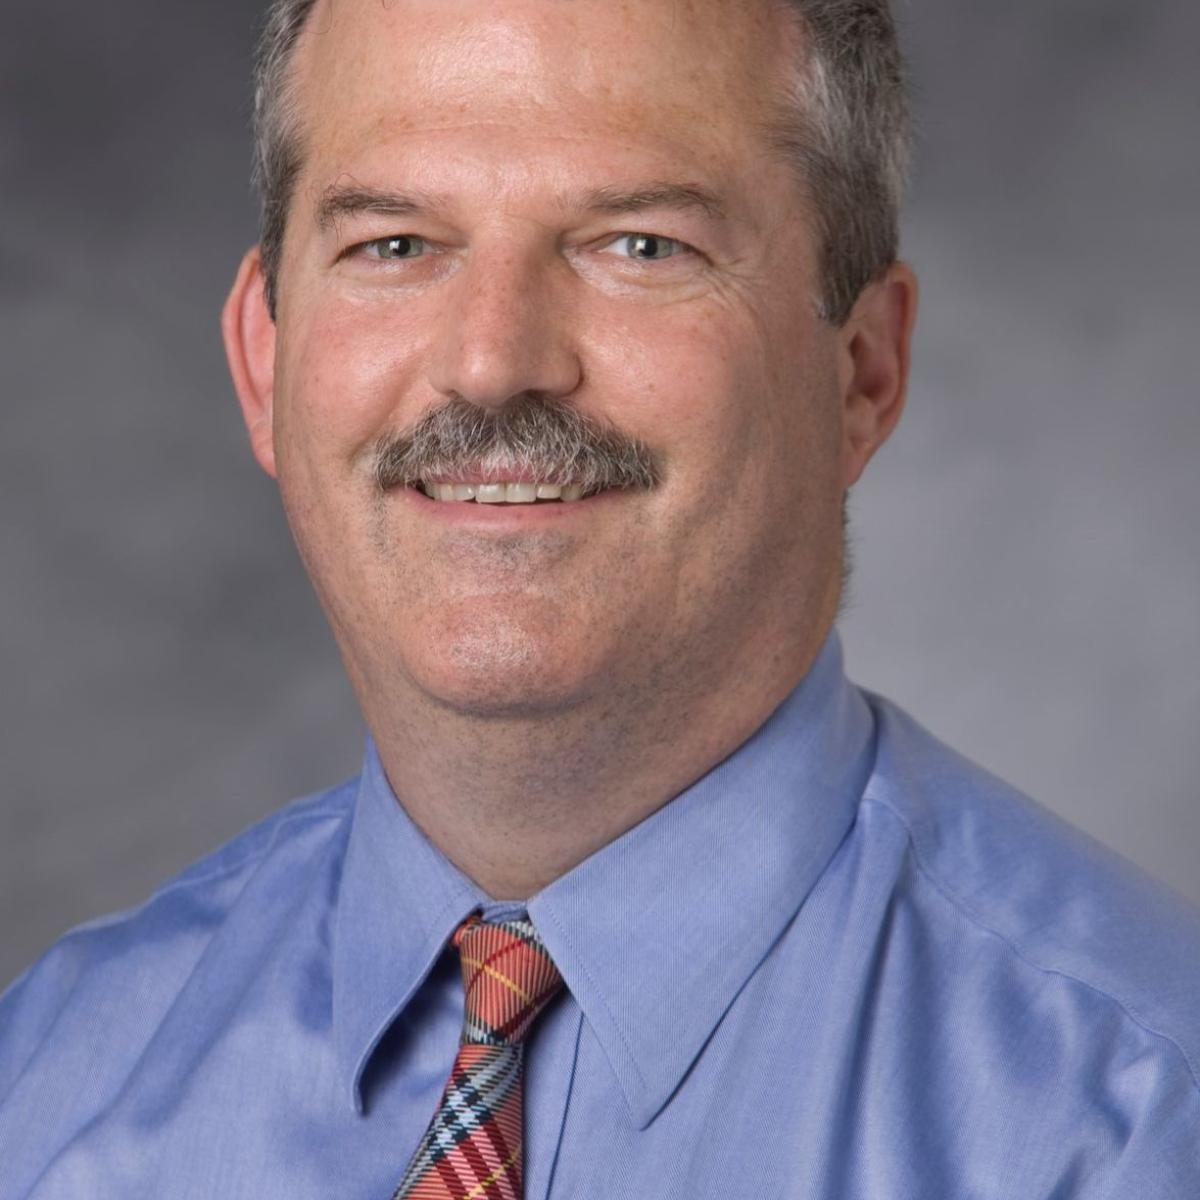 Wake Forest Baptist Medical Center hires new OB-GYN chairman